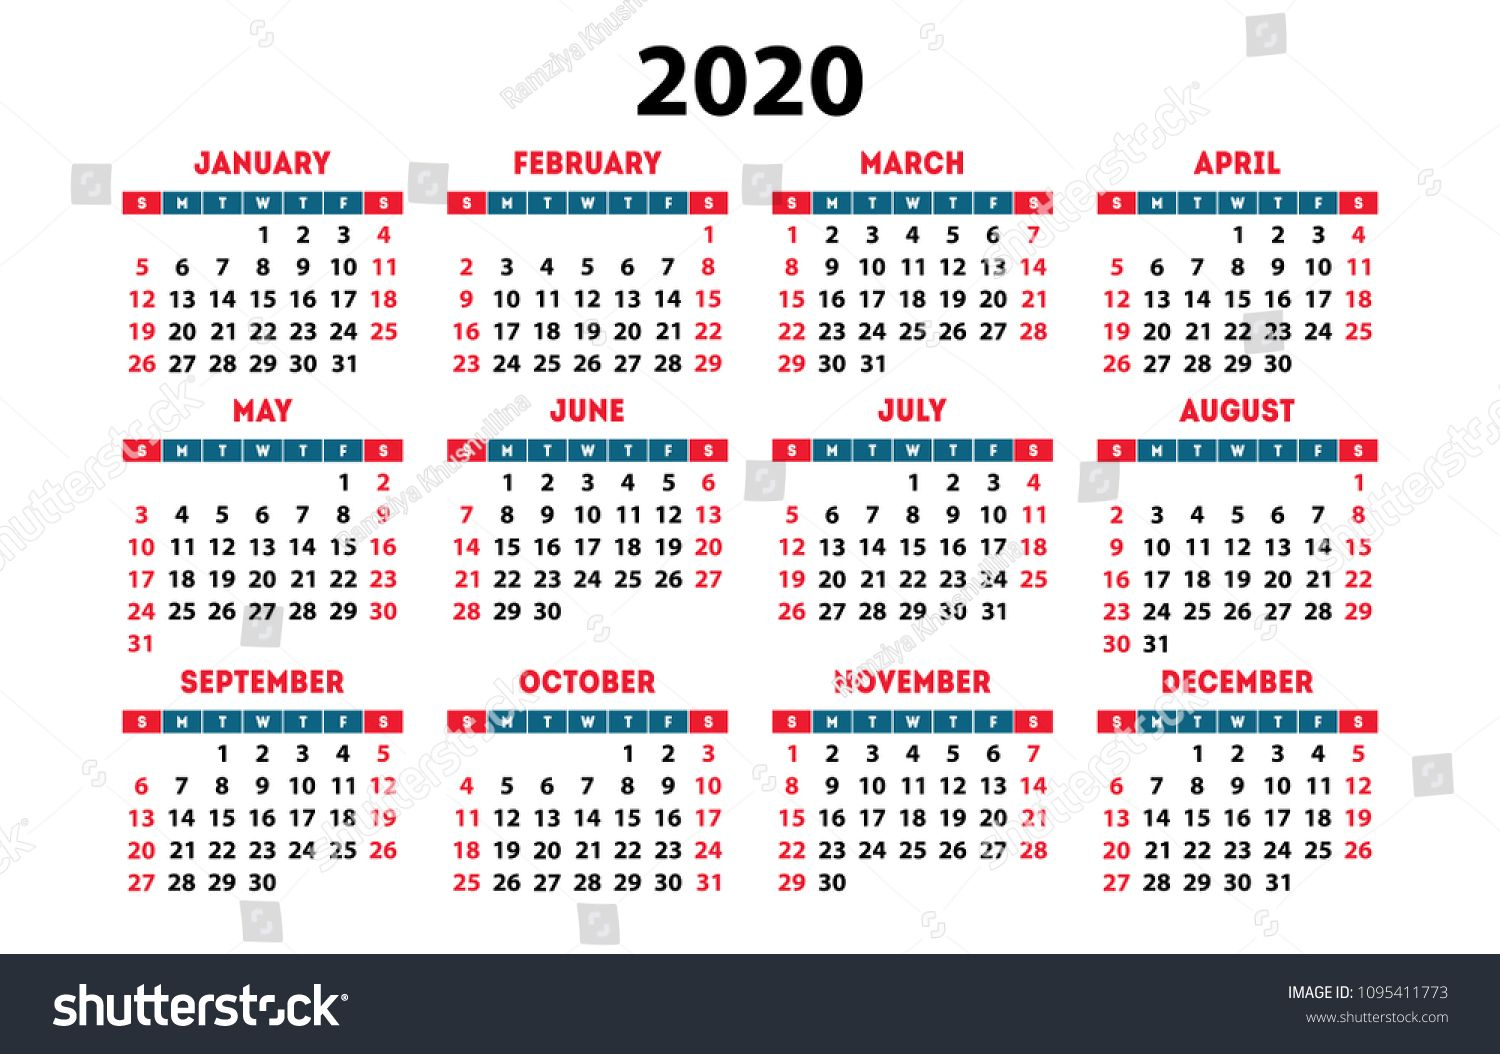 Calendar 2020 Vector Pocket Basic Grid. Simple Design